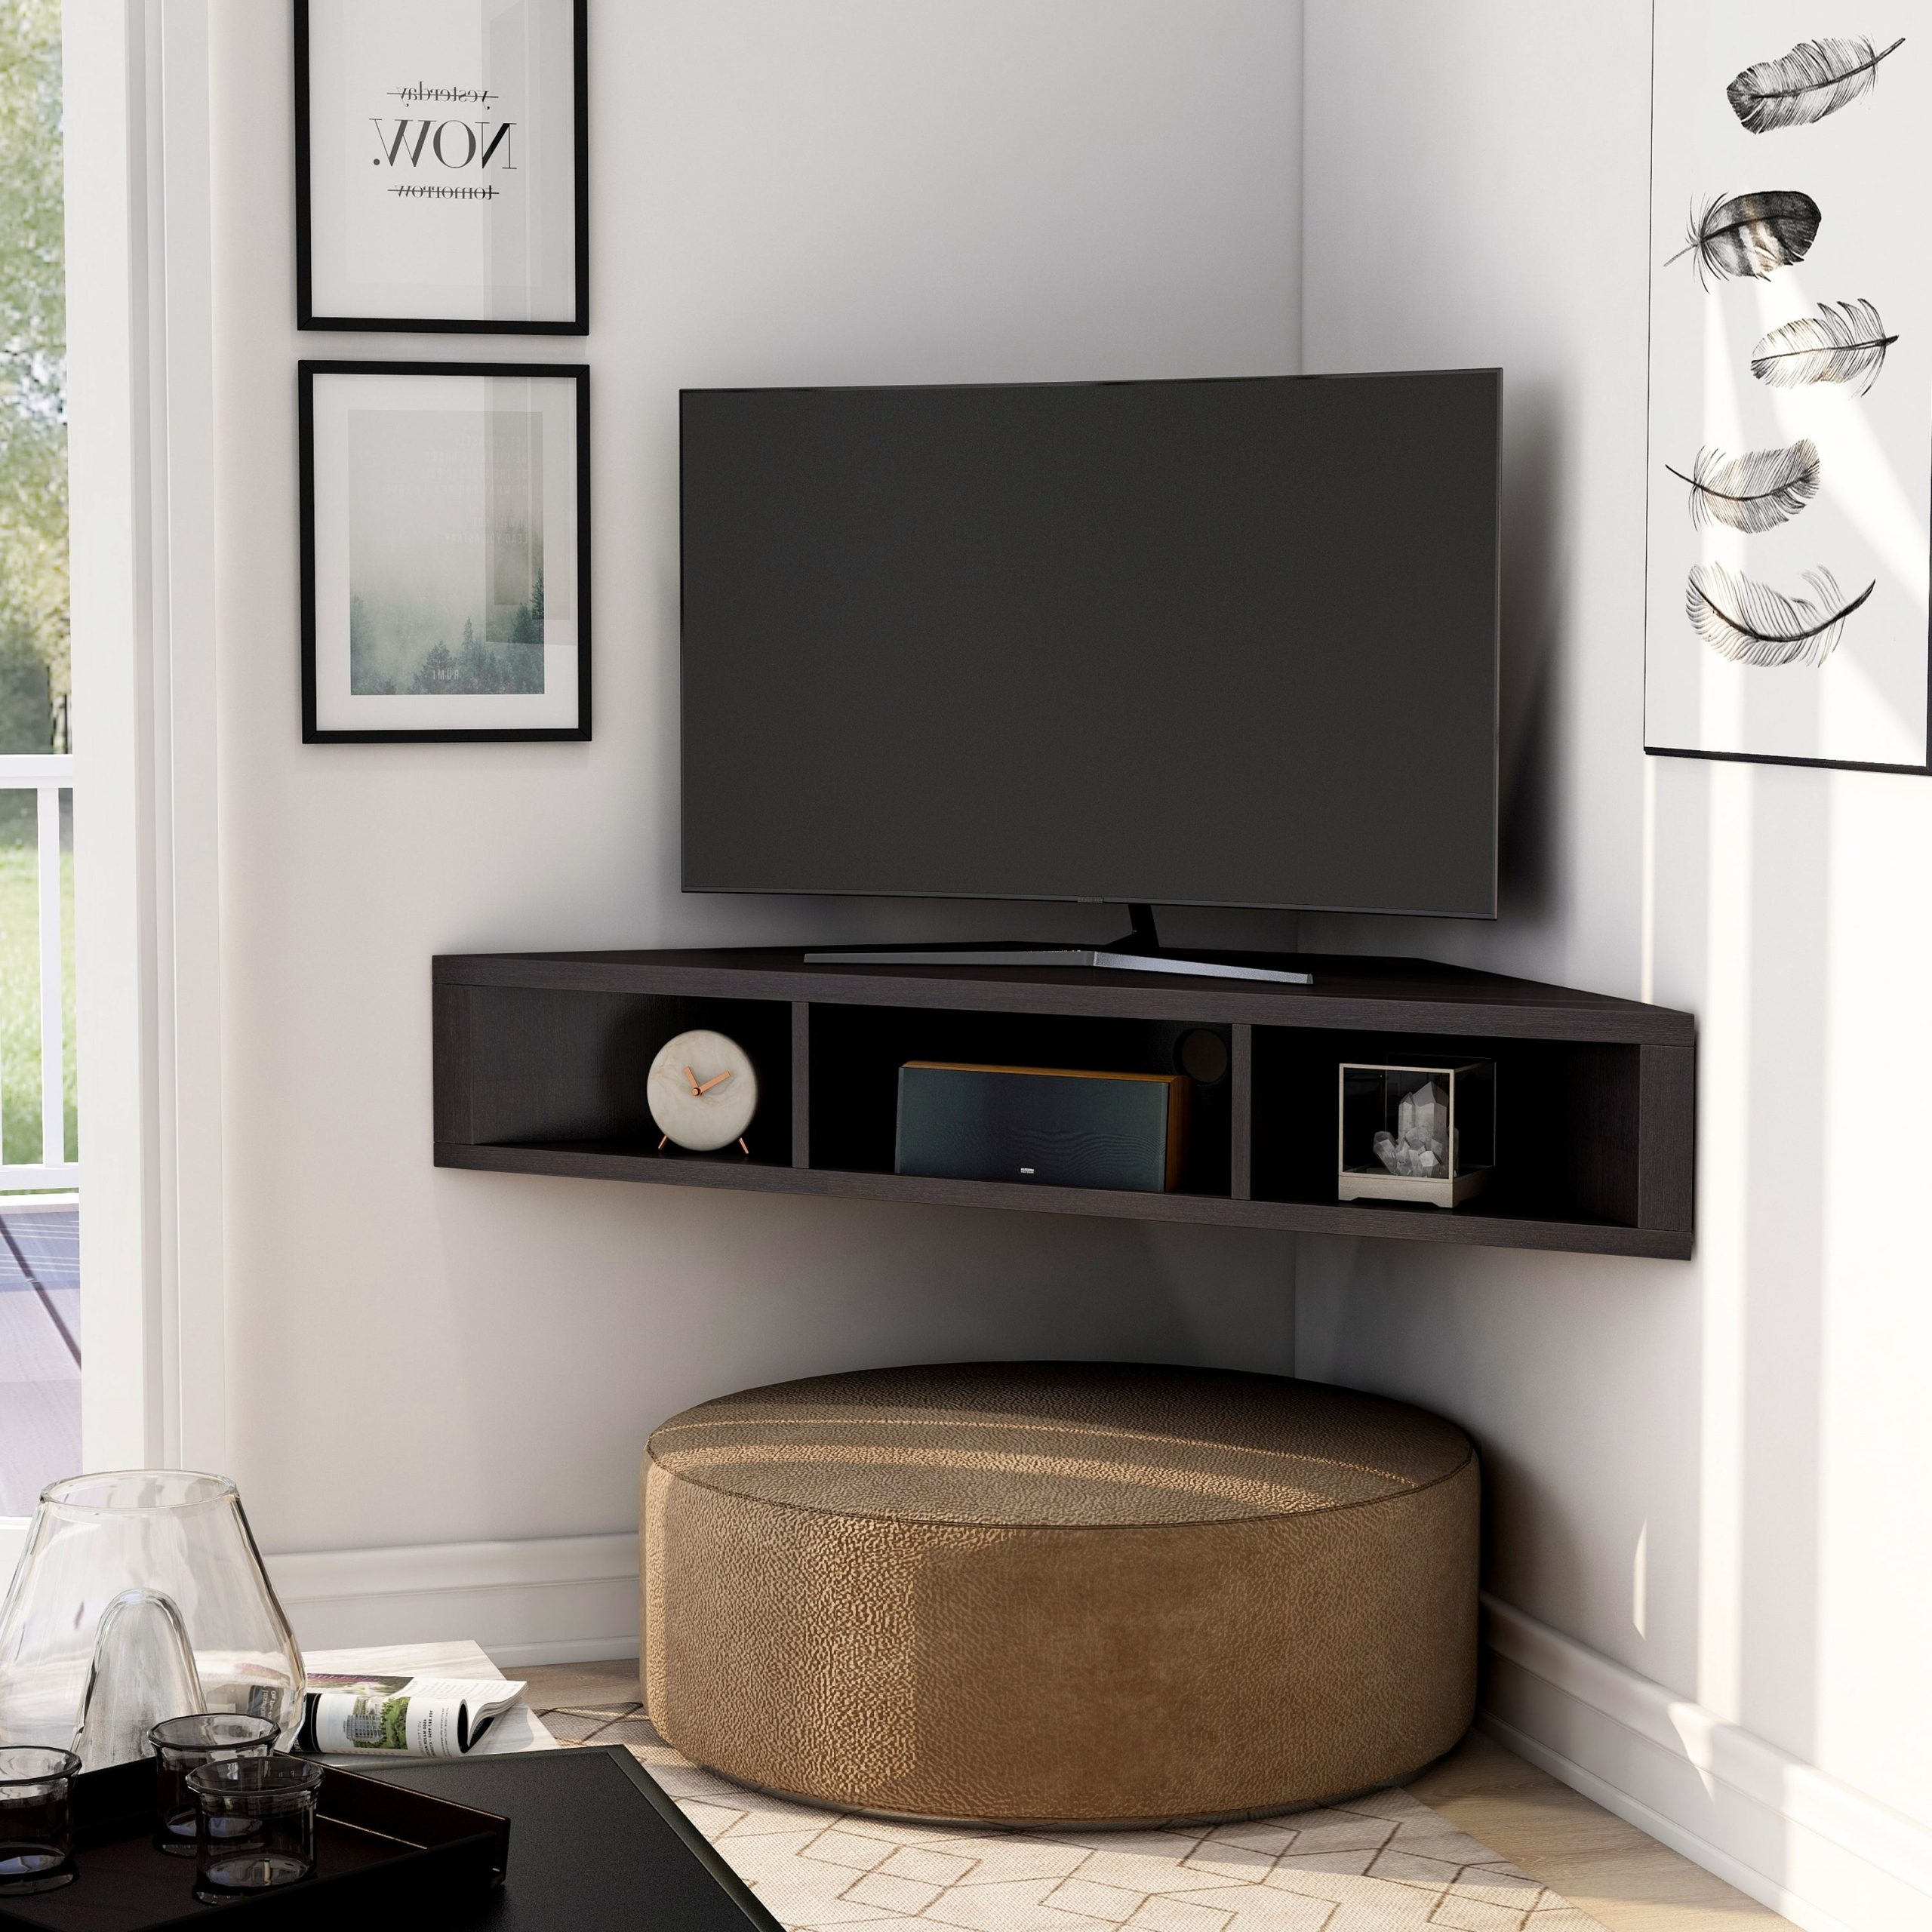 Preferred Floating Corner Tv Shelf White – Canvas Home Throughout Freya Corner Tv Stands (View 2 of 10)